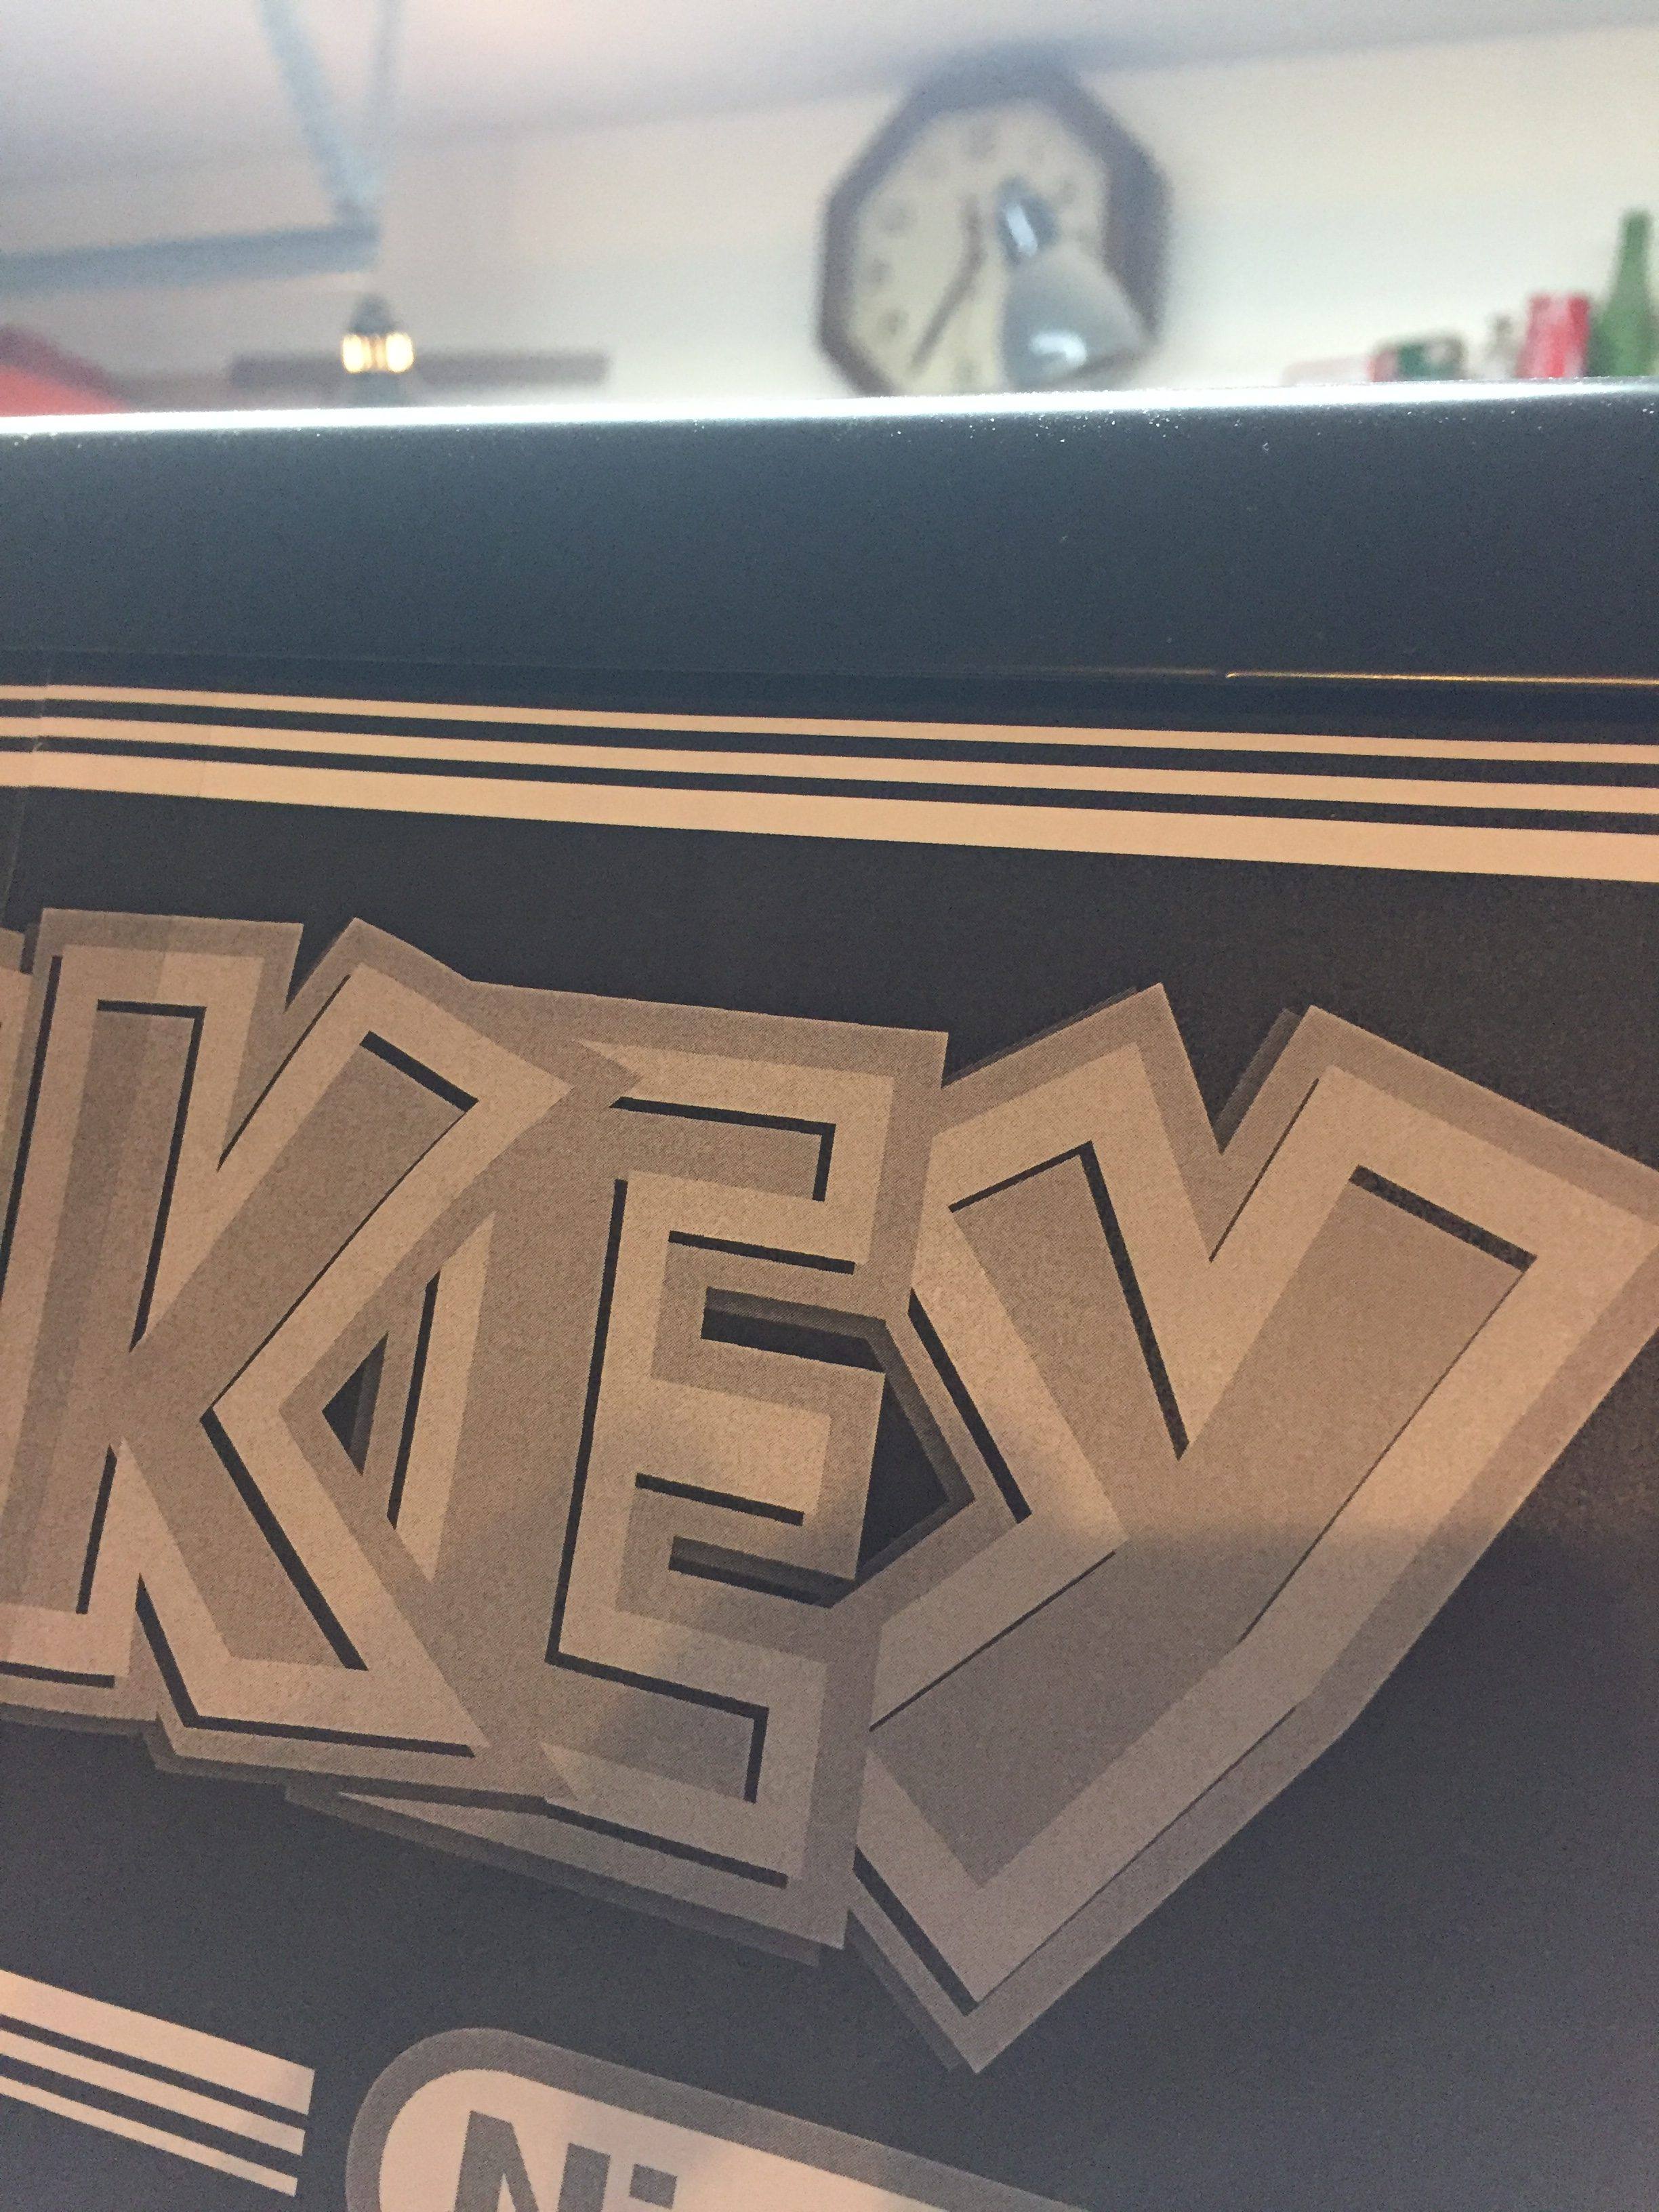 Donkey Kong Arcade Machine: Marquee Close-up